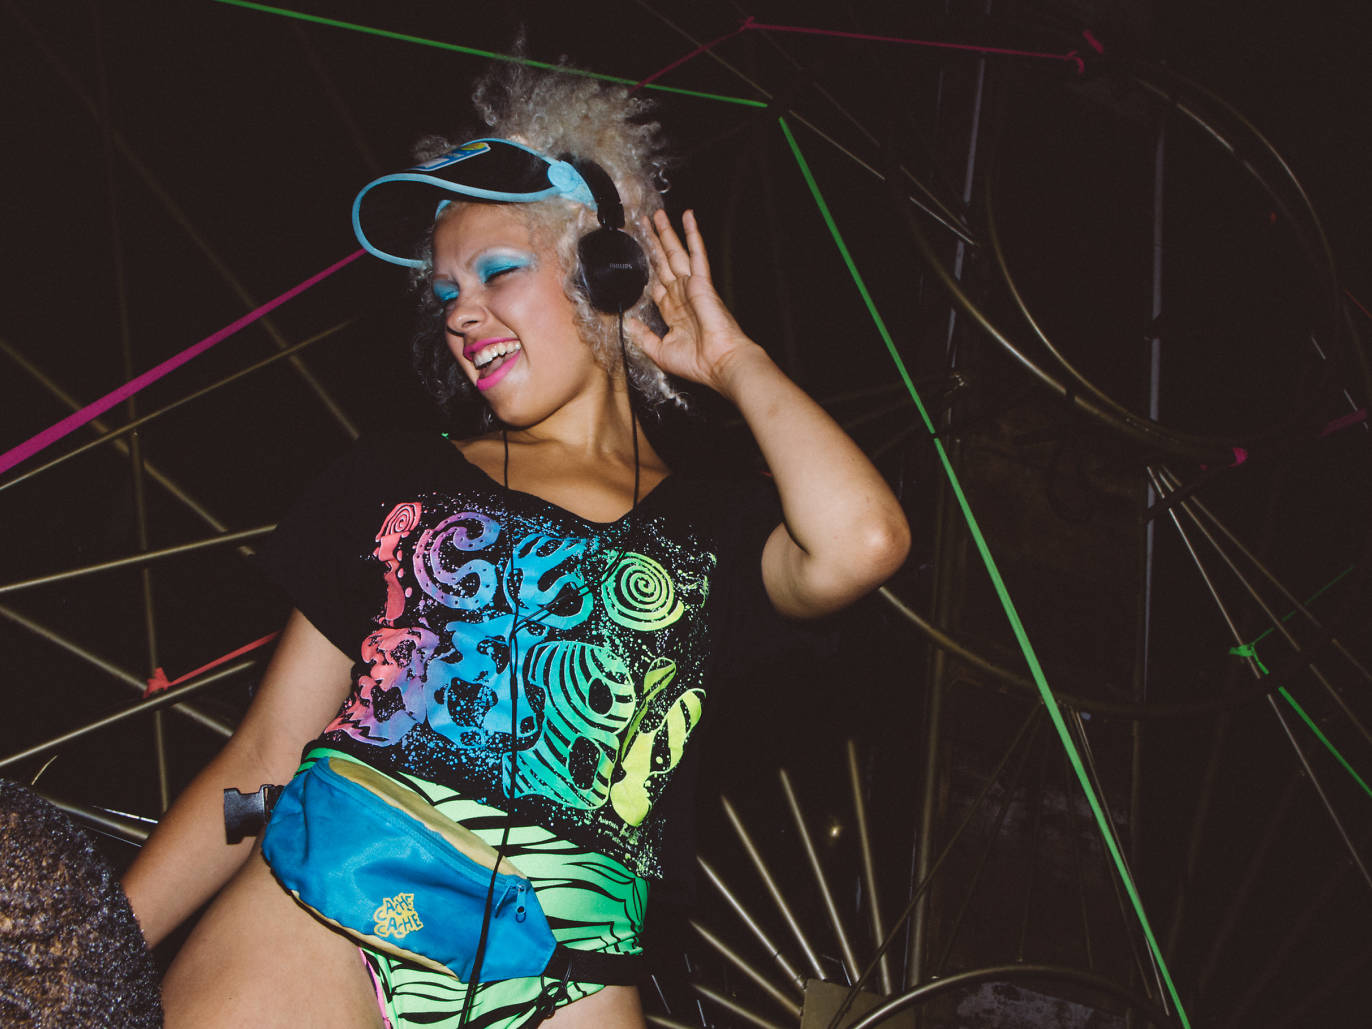 Throwback Friday: 80s/90s Party @HOY 7.21.17